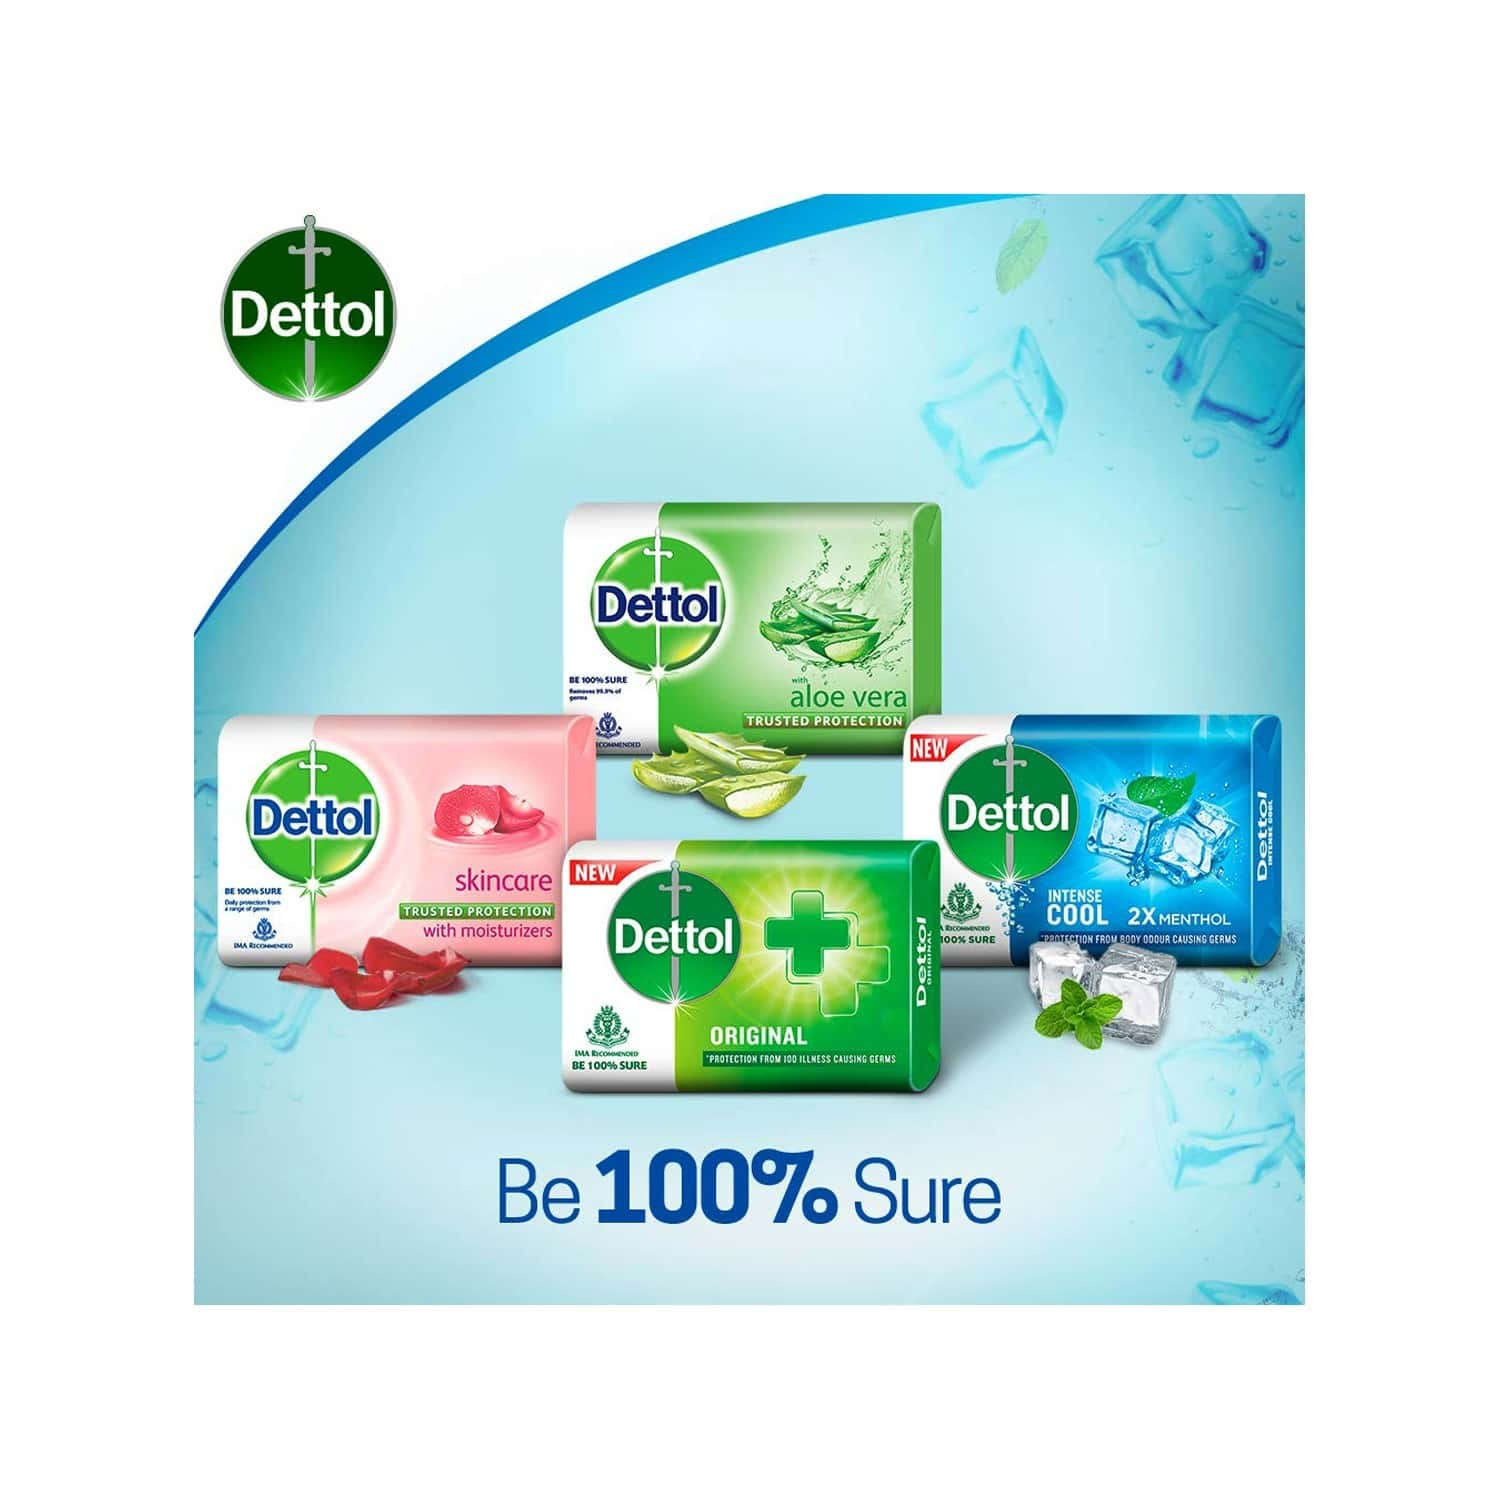 Dettol Cool Soap Wrap Of 300 G (buy 3 Get 1 Free)